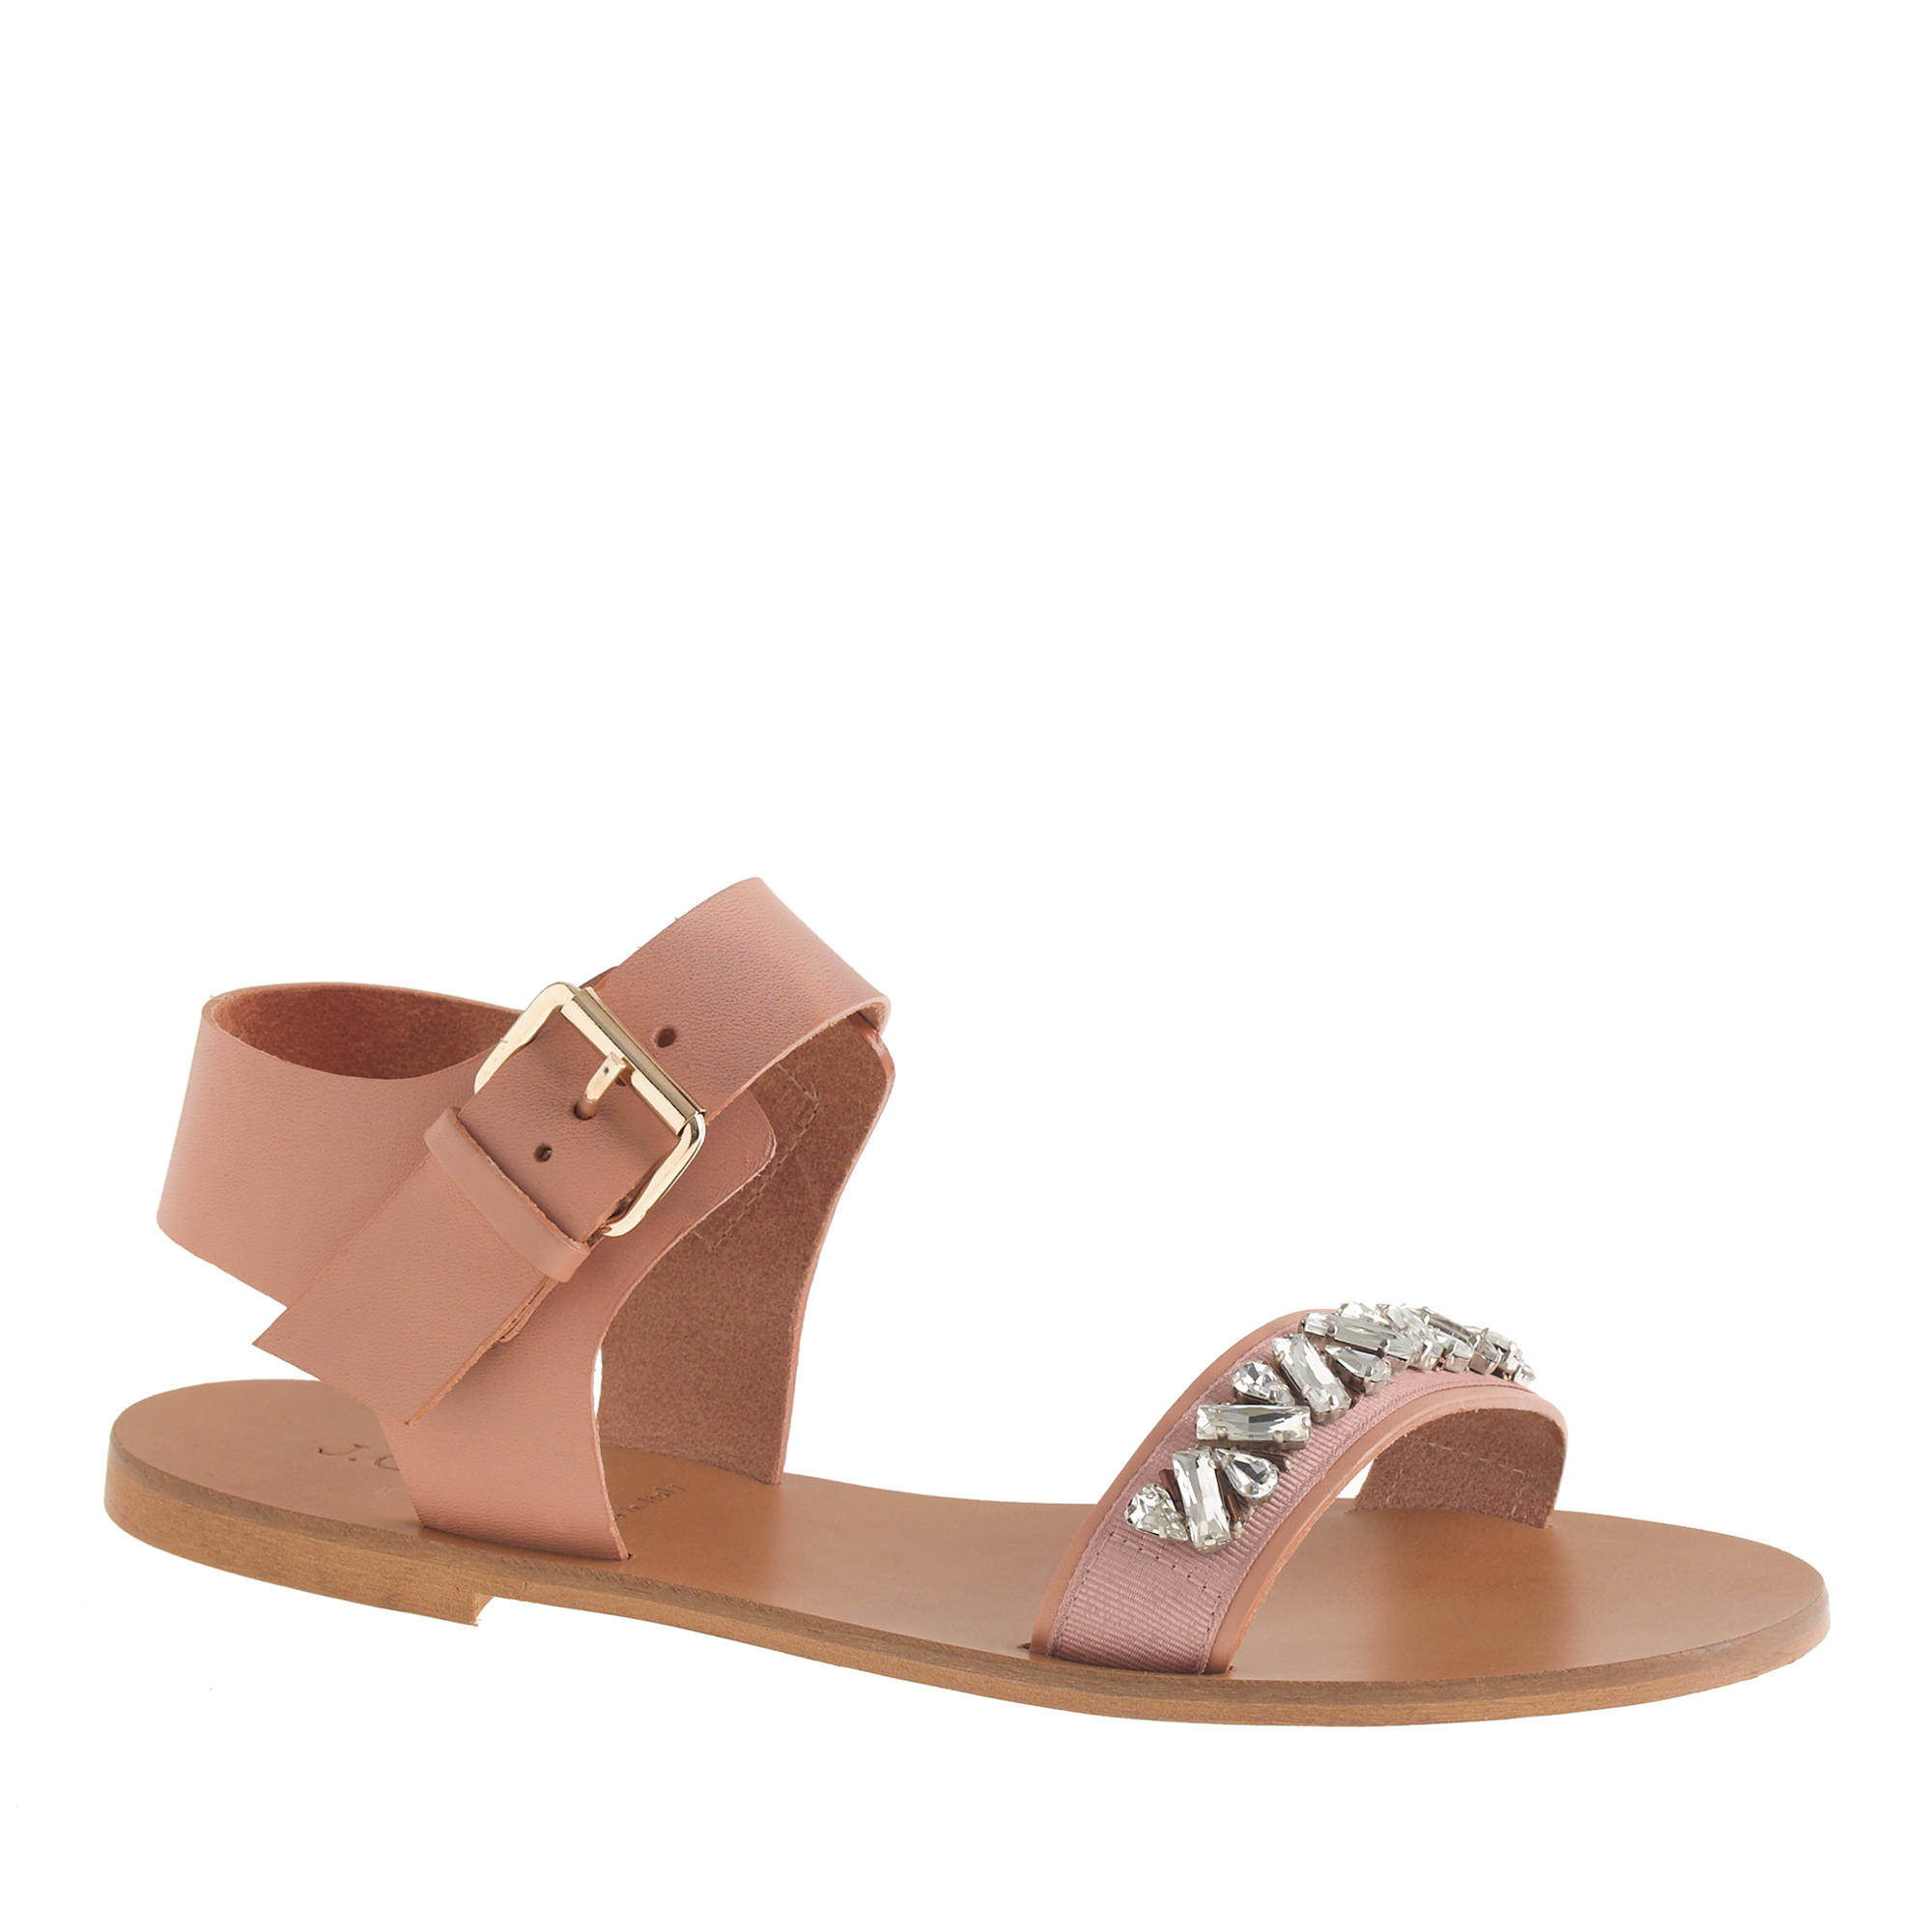 Ankle strap jeweled sandals j crew for J crew bedroom slippers